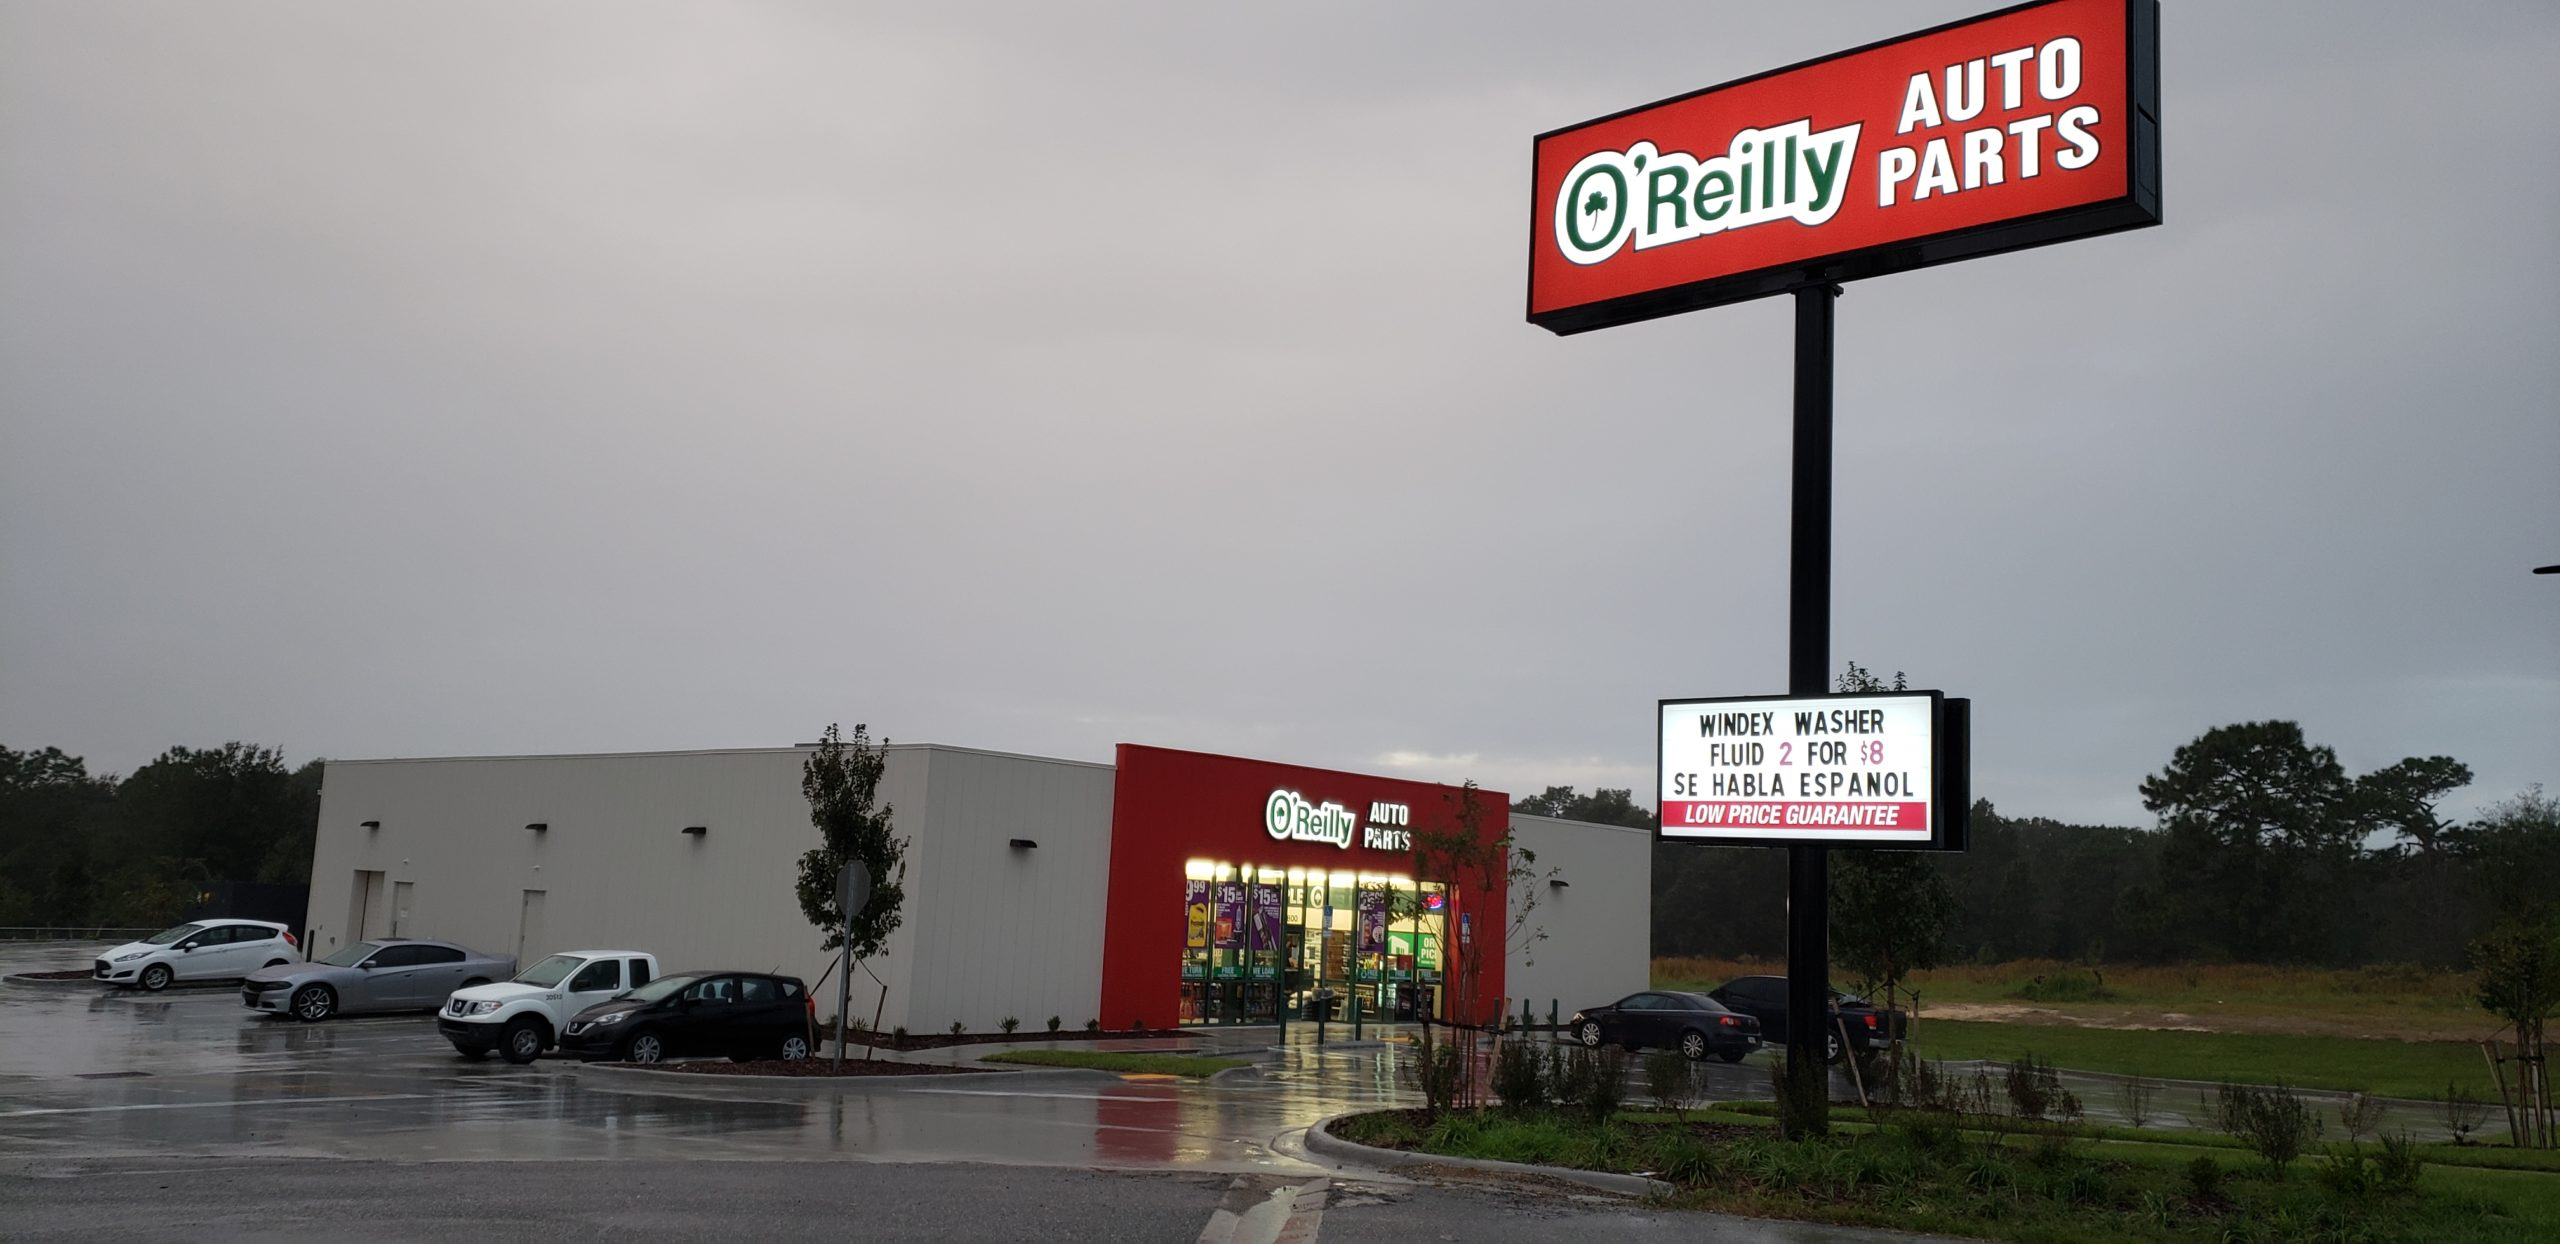 11-12-2019 Welcome O'Reilly Auto Parts to the Shores